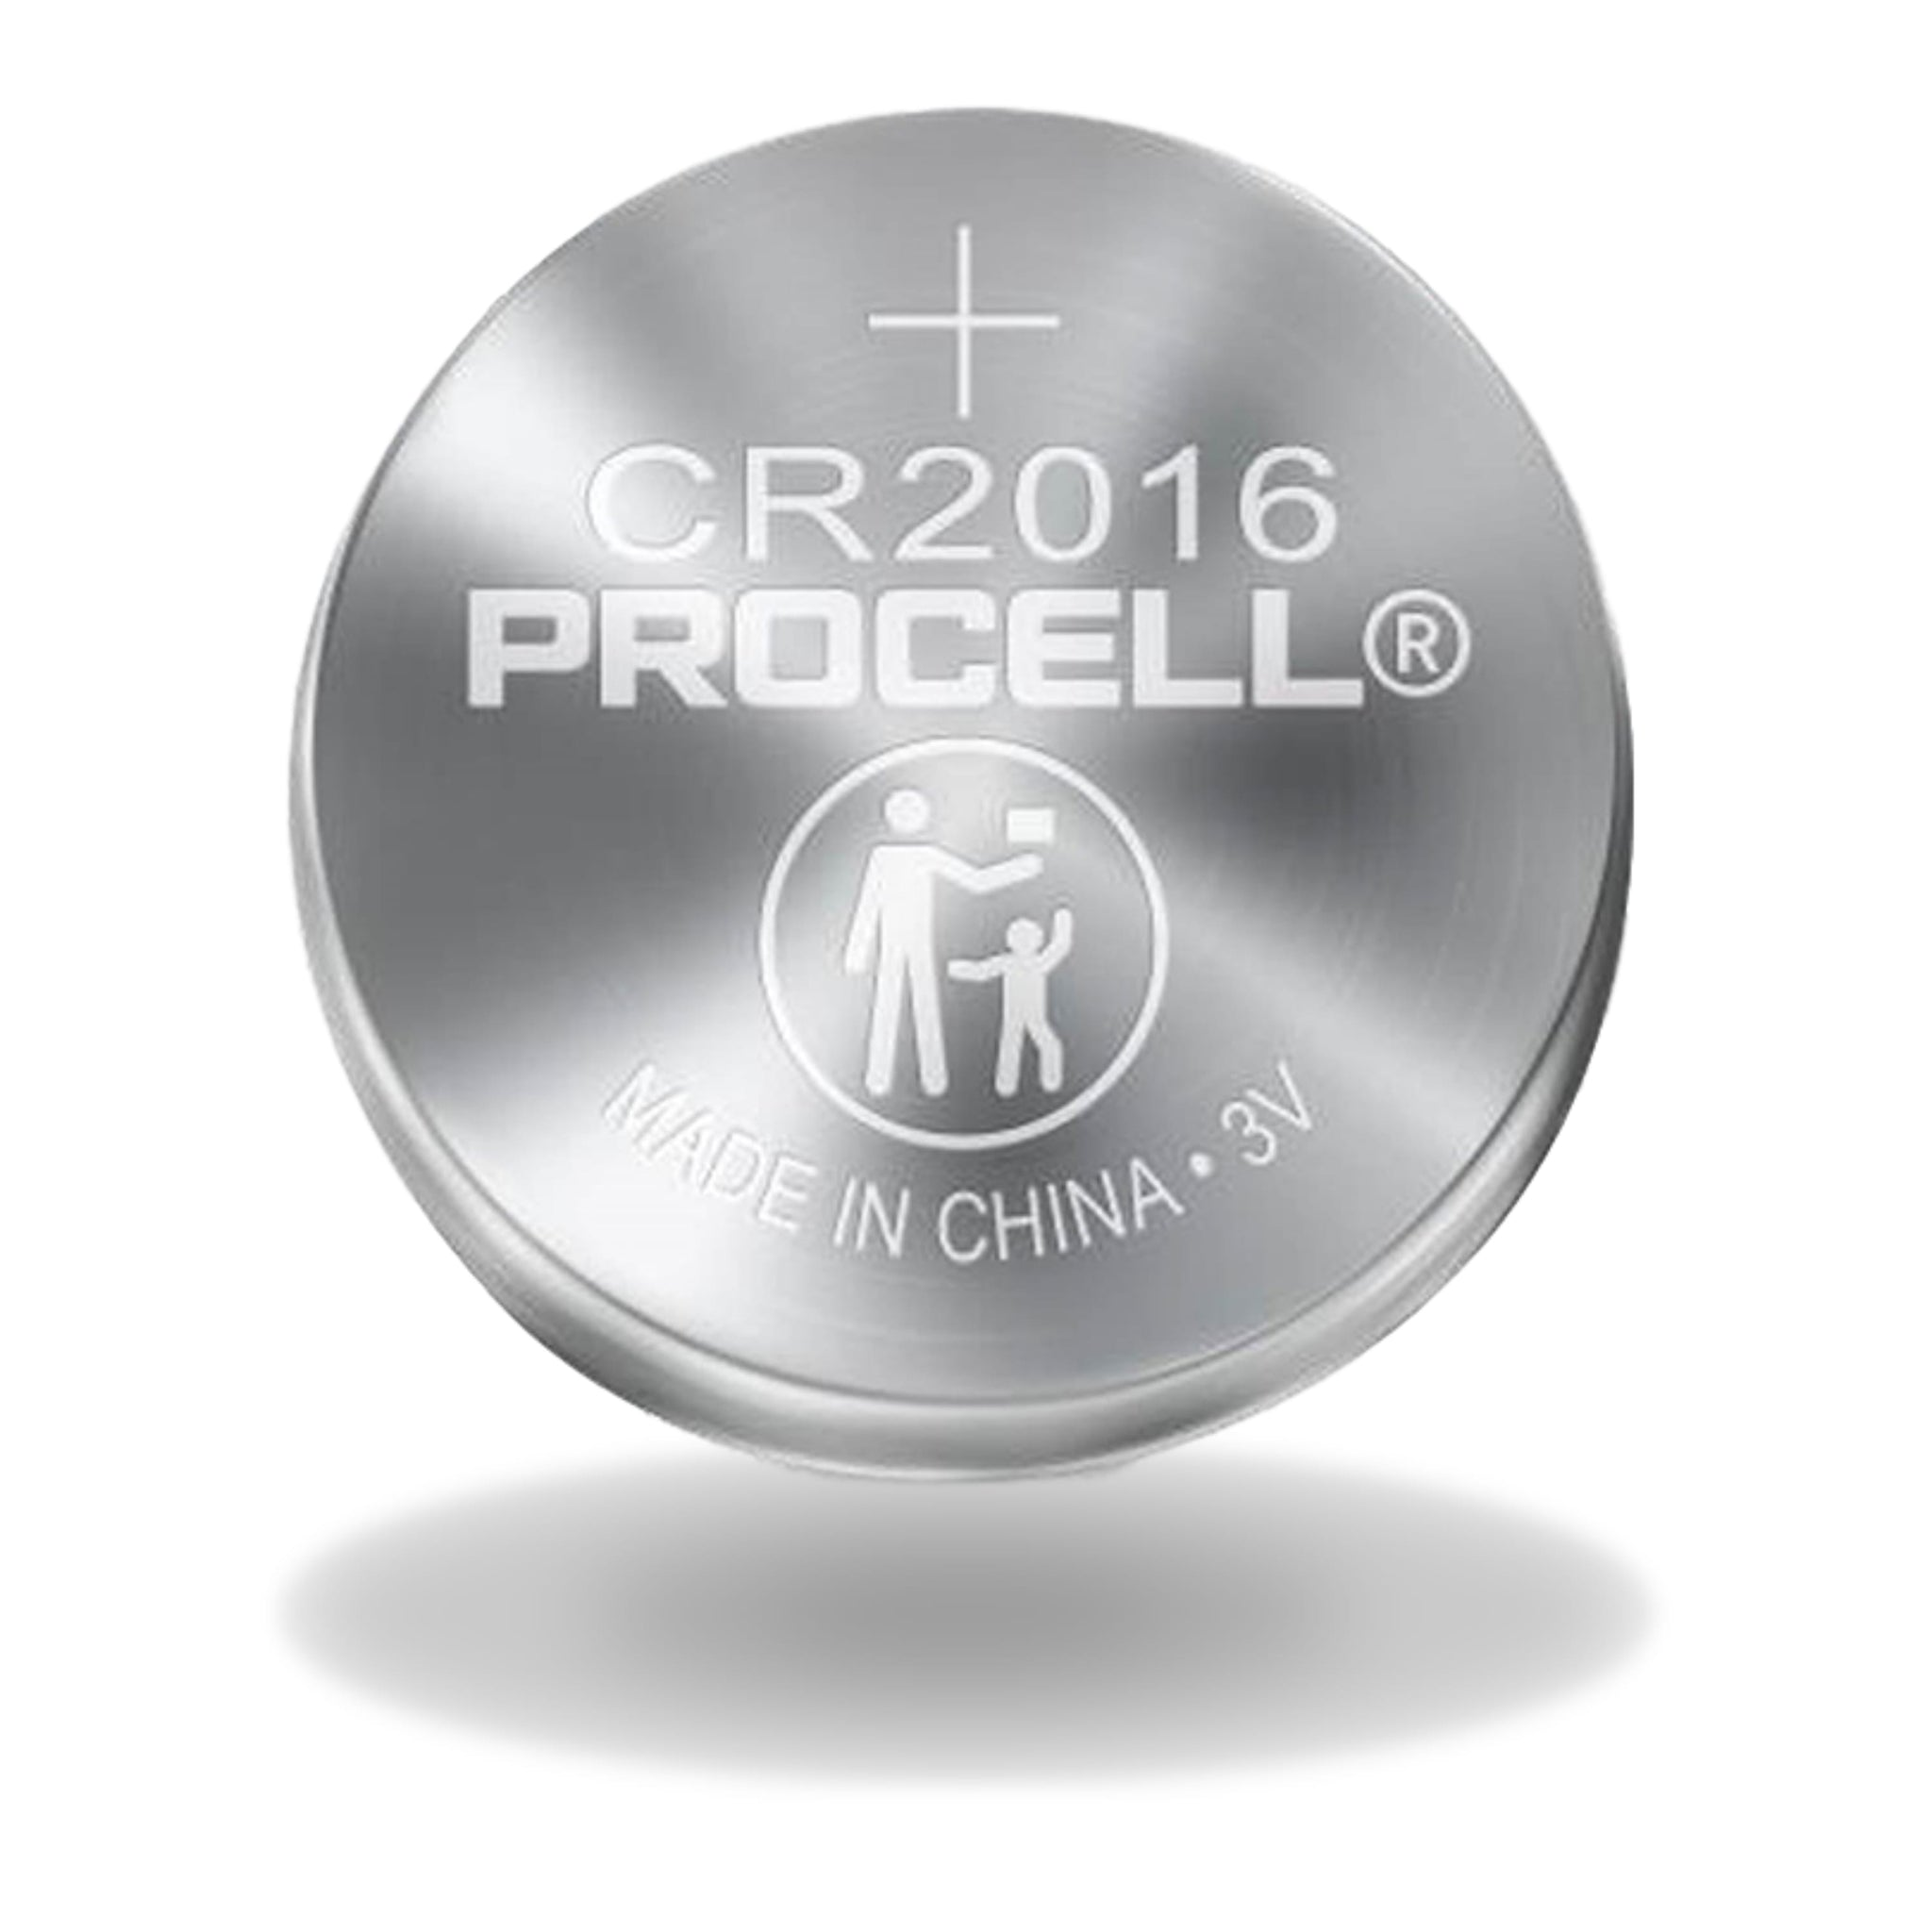 PROCELL CR2016 3V Lithium Coin Battery Bulk Strip of 5